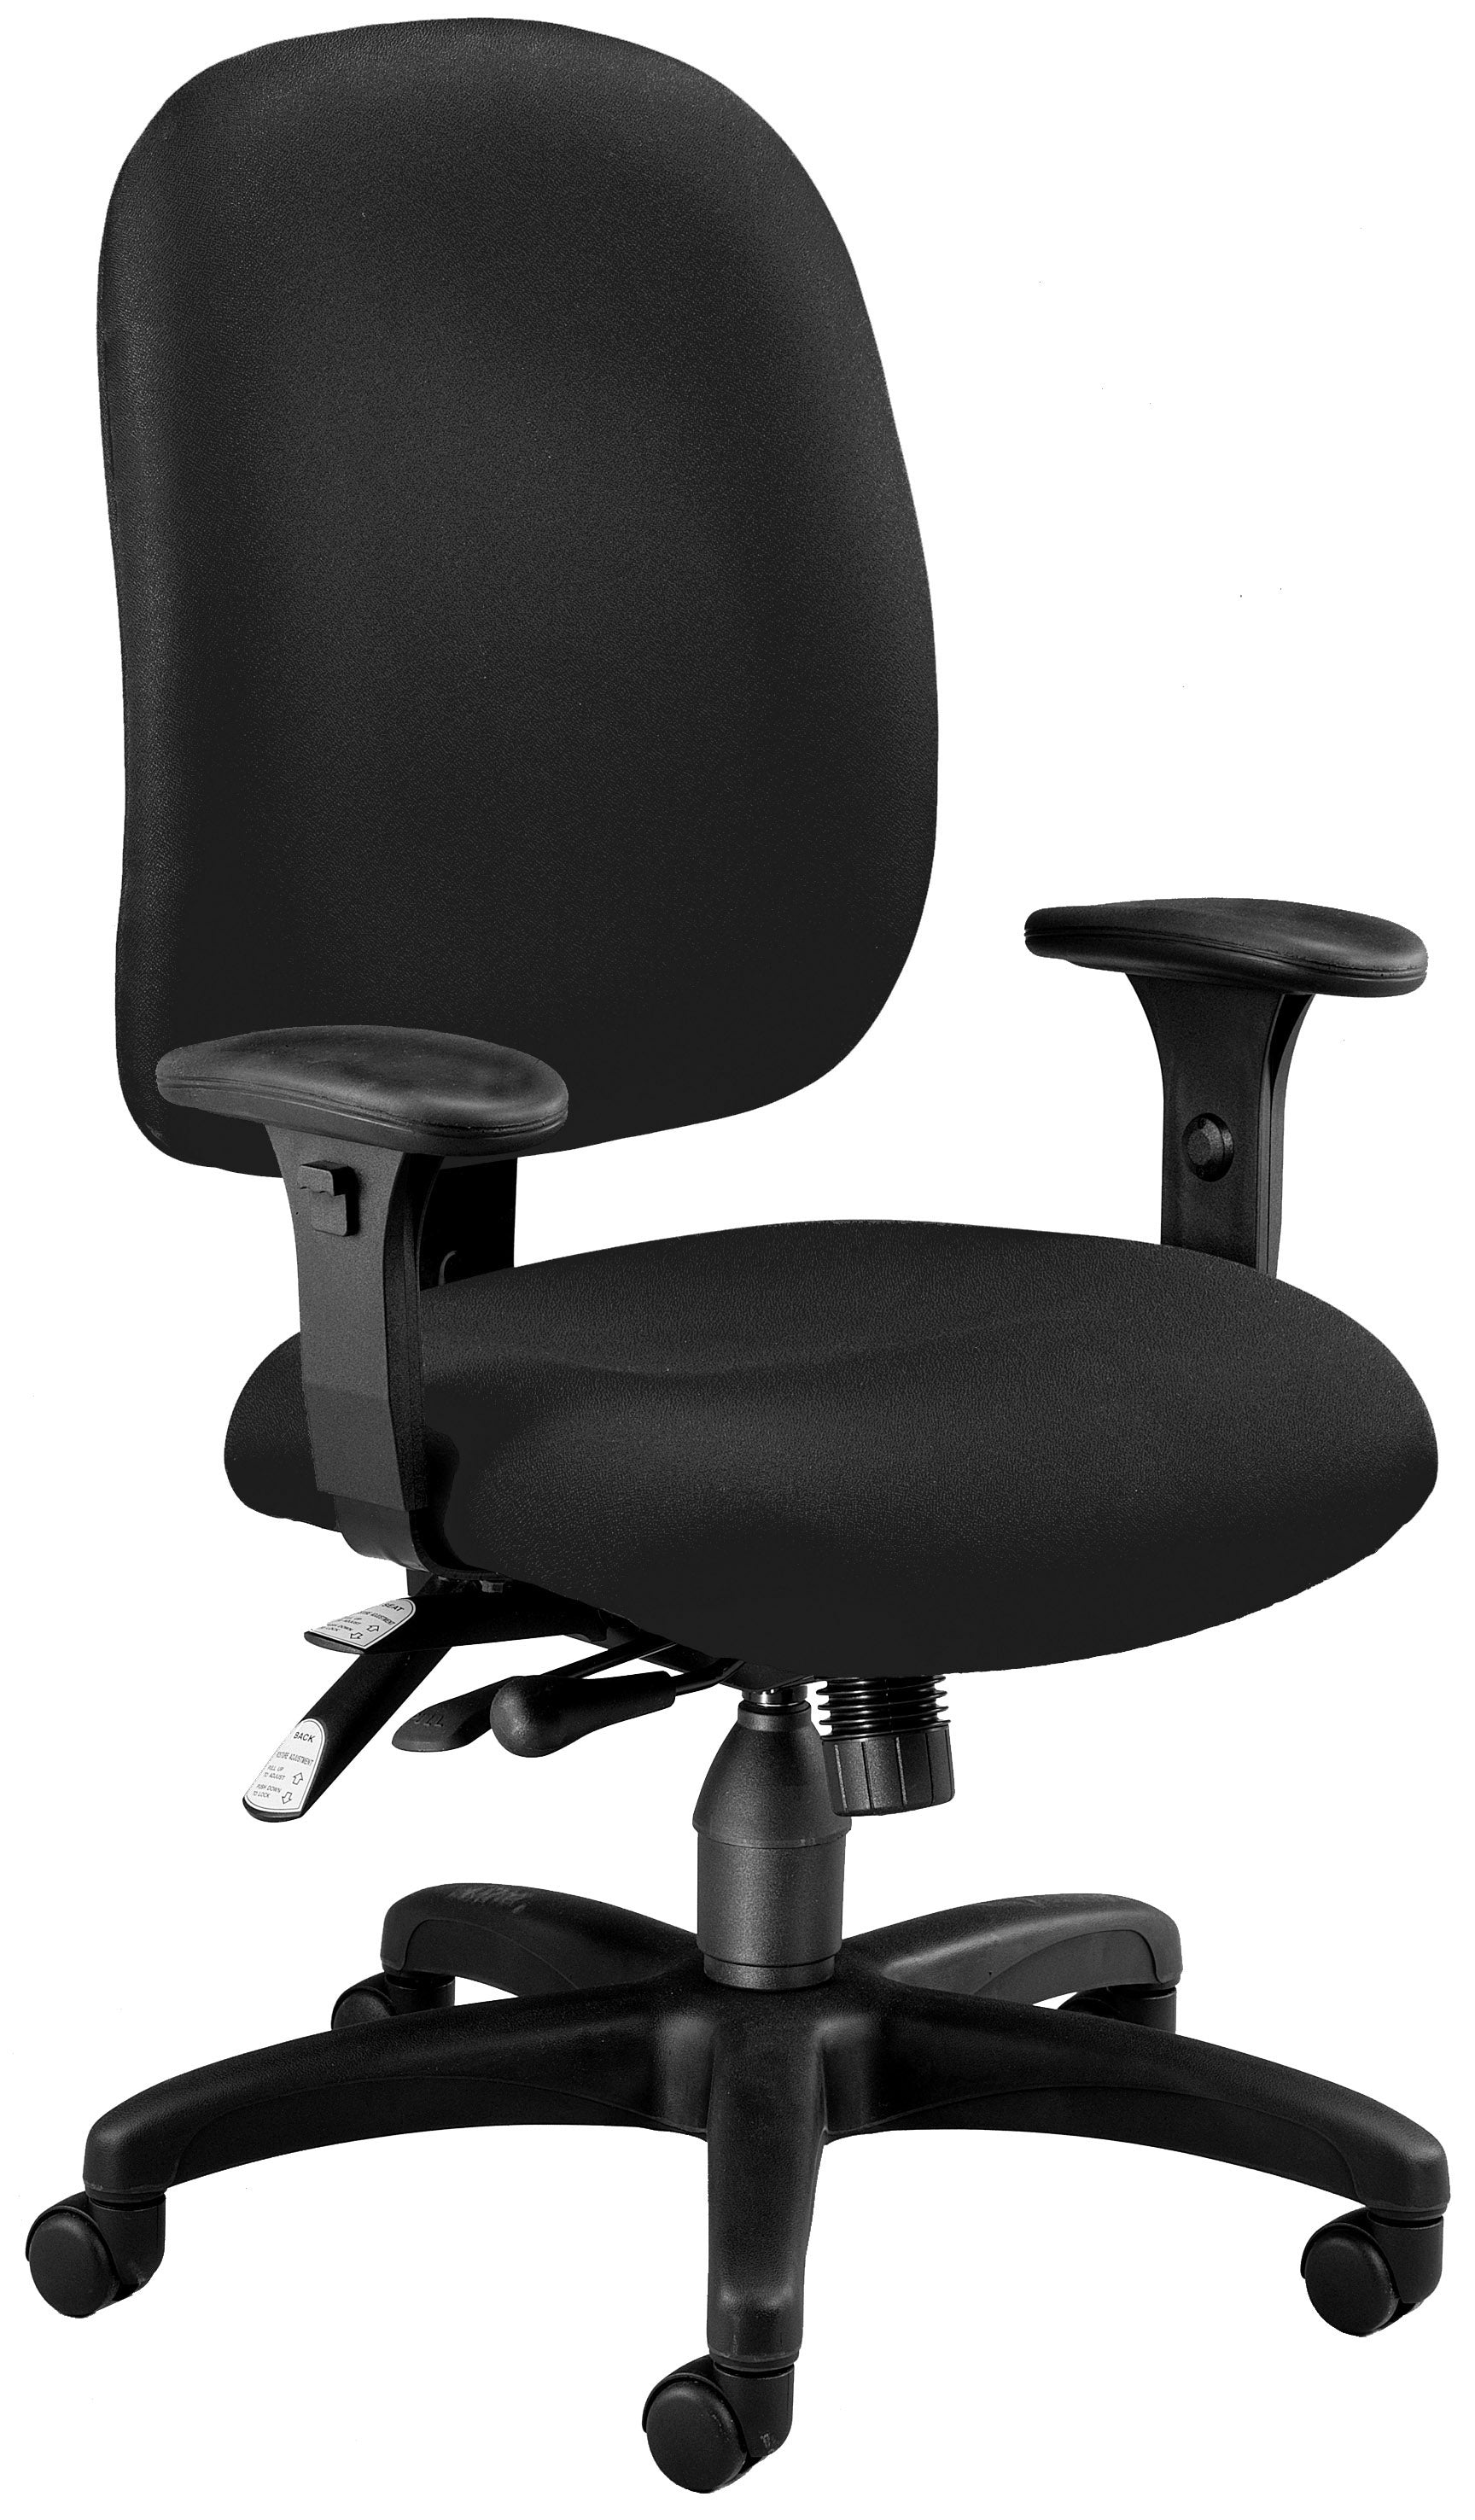 Model 125 ComfySeat Ergonomic Multi-Adjustable Fabric Task Arms Chair